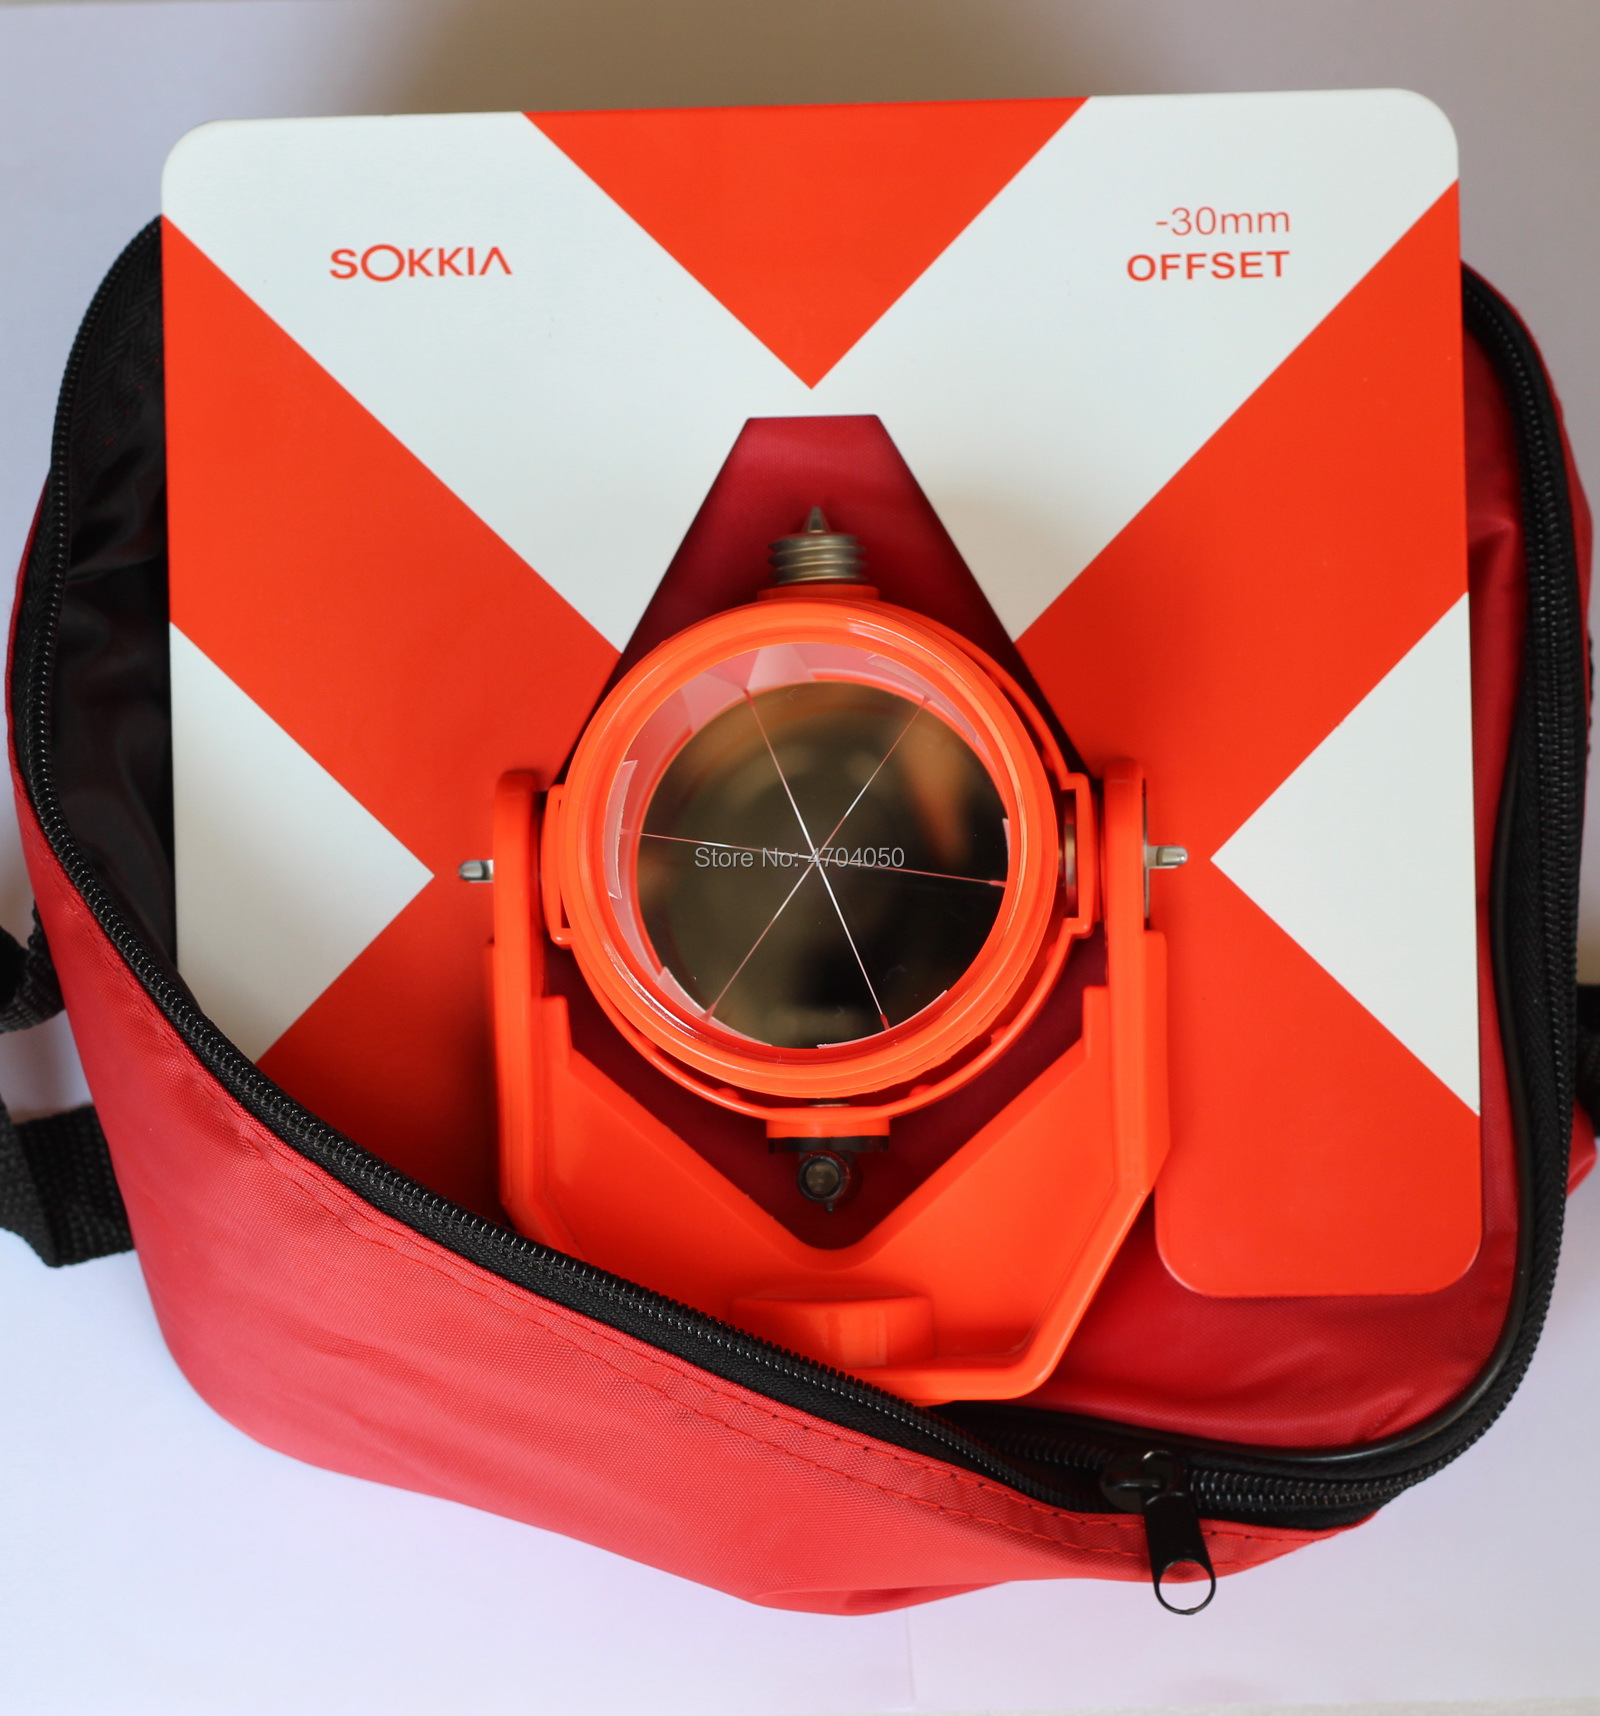 NEW REPLACE SOKKIA RED PRISM AND TARGET Single Tilt Prism Soft Bag for Sokkia total stations